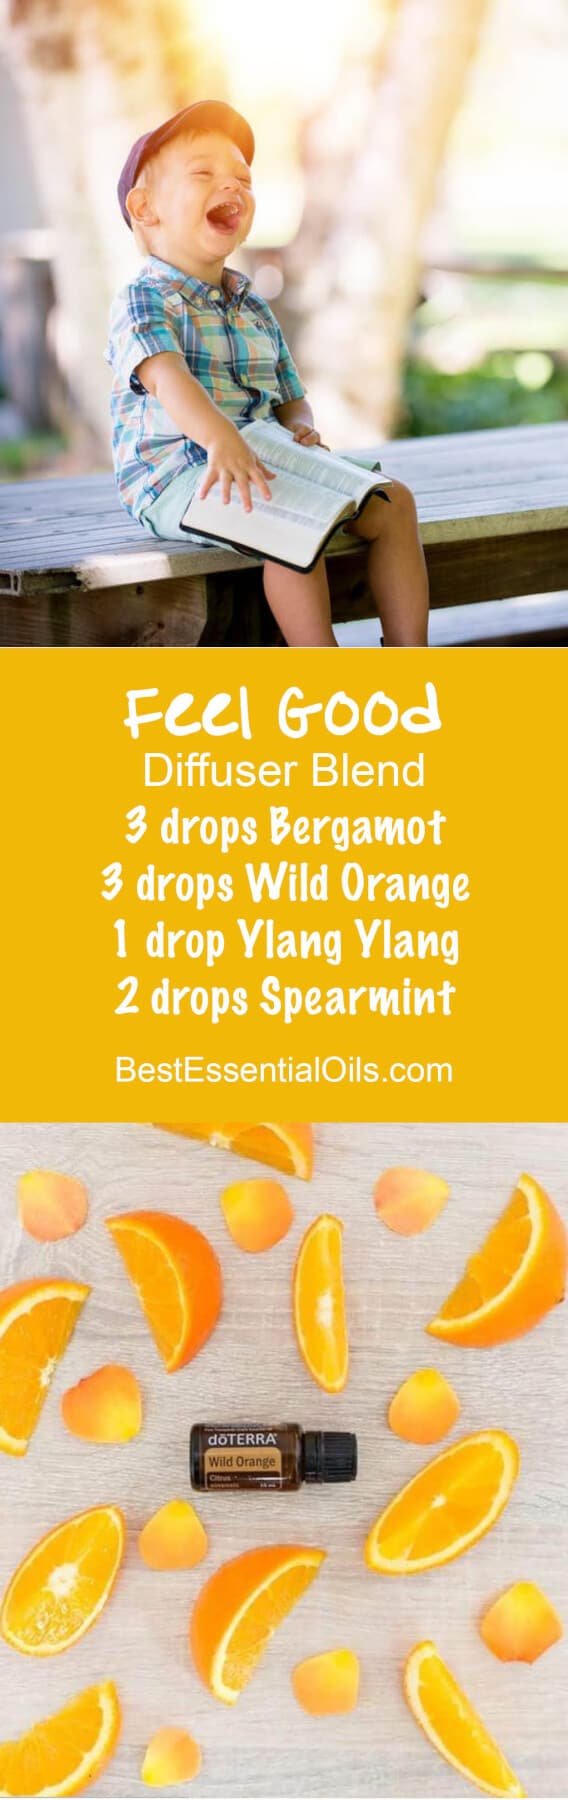 Feel Good doTERRA Diffuser Blend